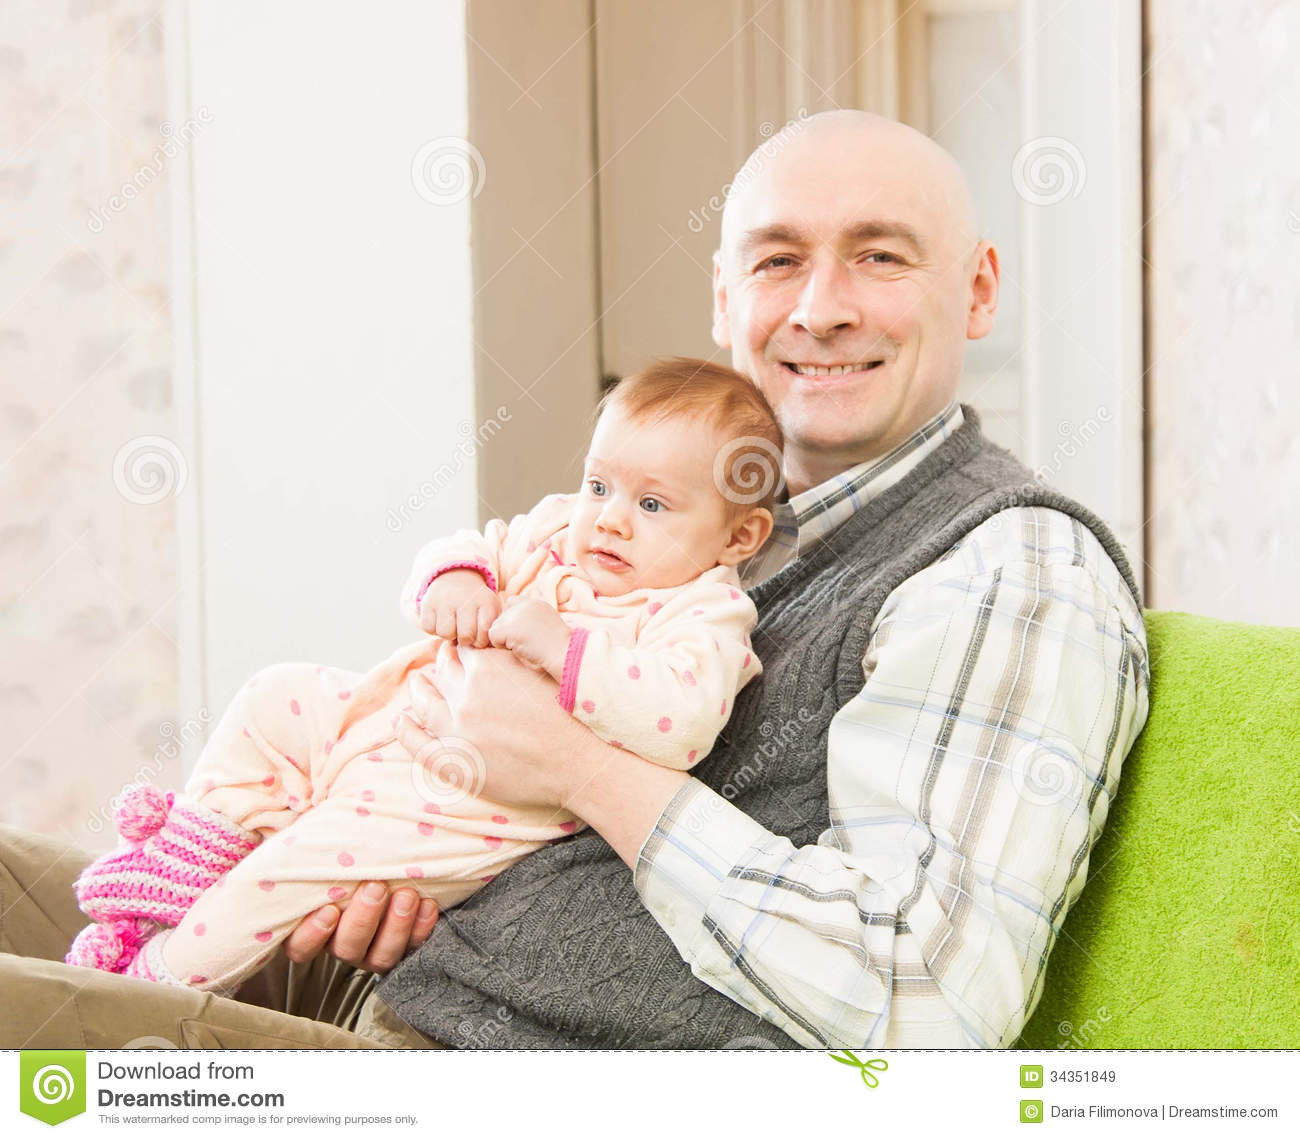 Dad and little daughter